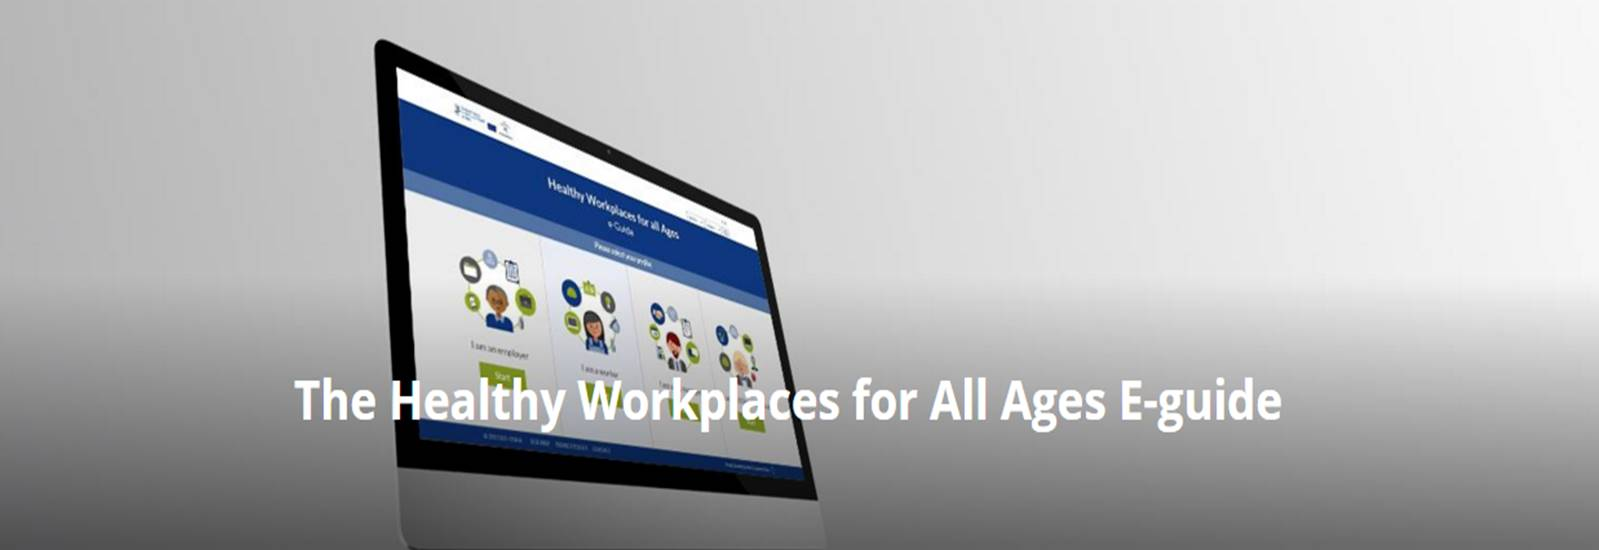 E-guide to managing age at work